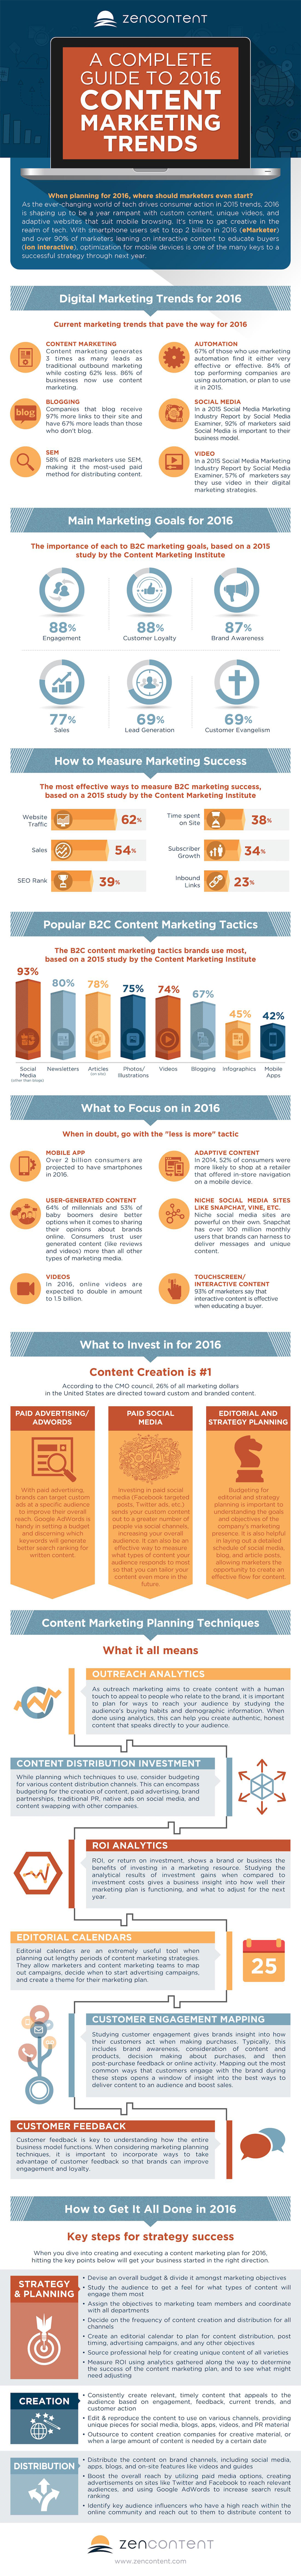 A Guide to 2016 Content Marketing Trends